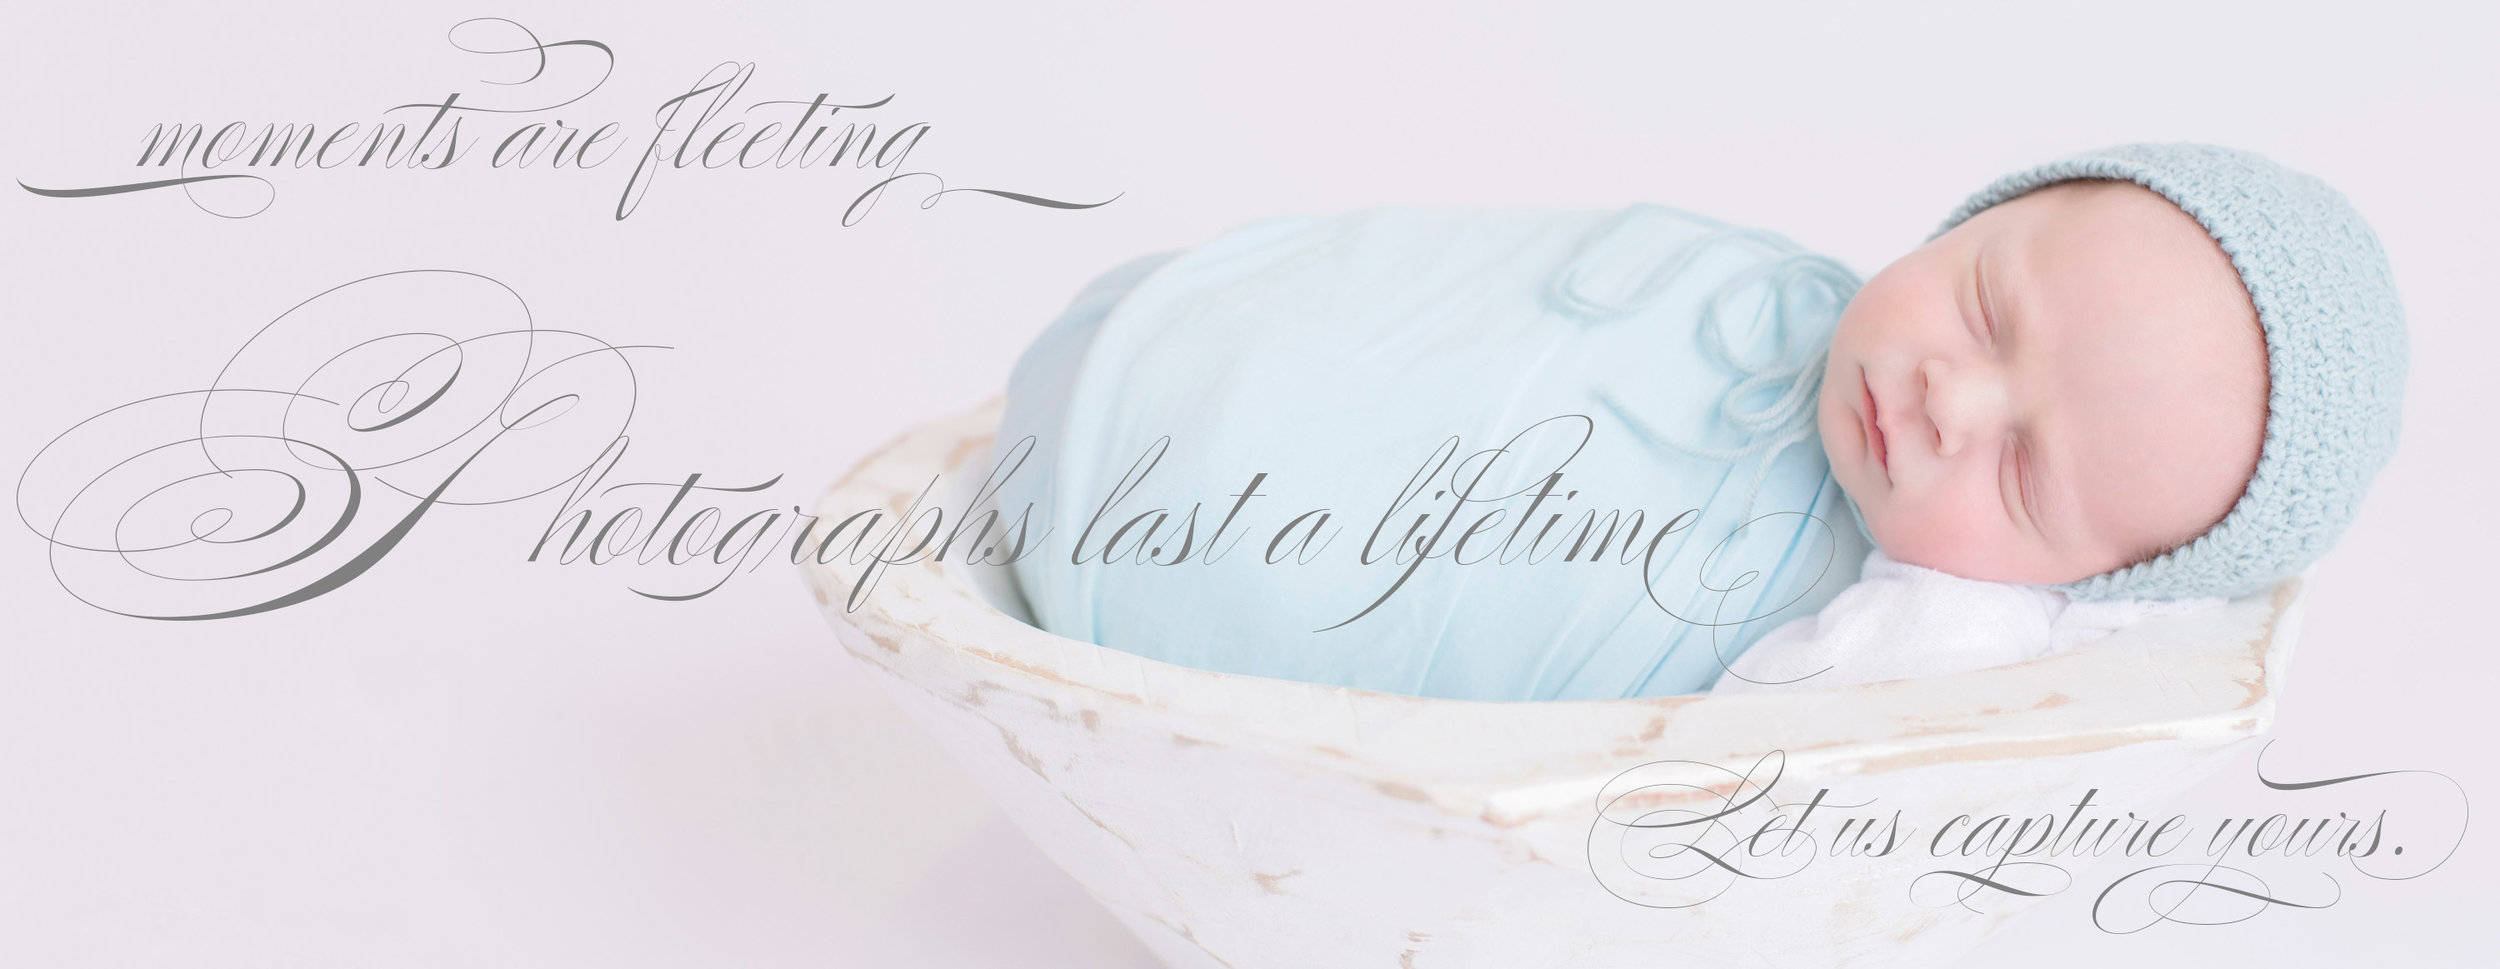 newbornsesh_header1.jpg